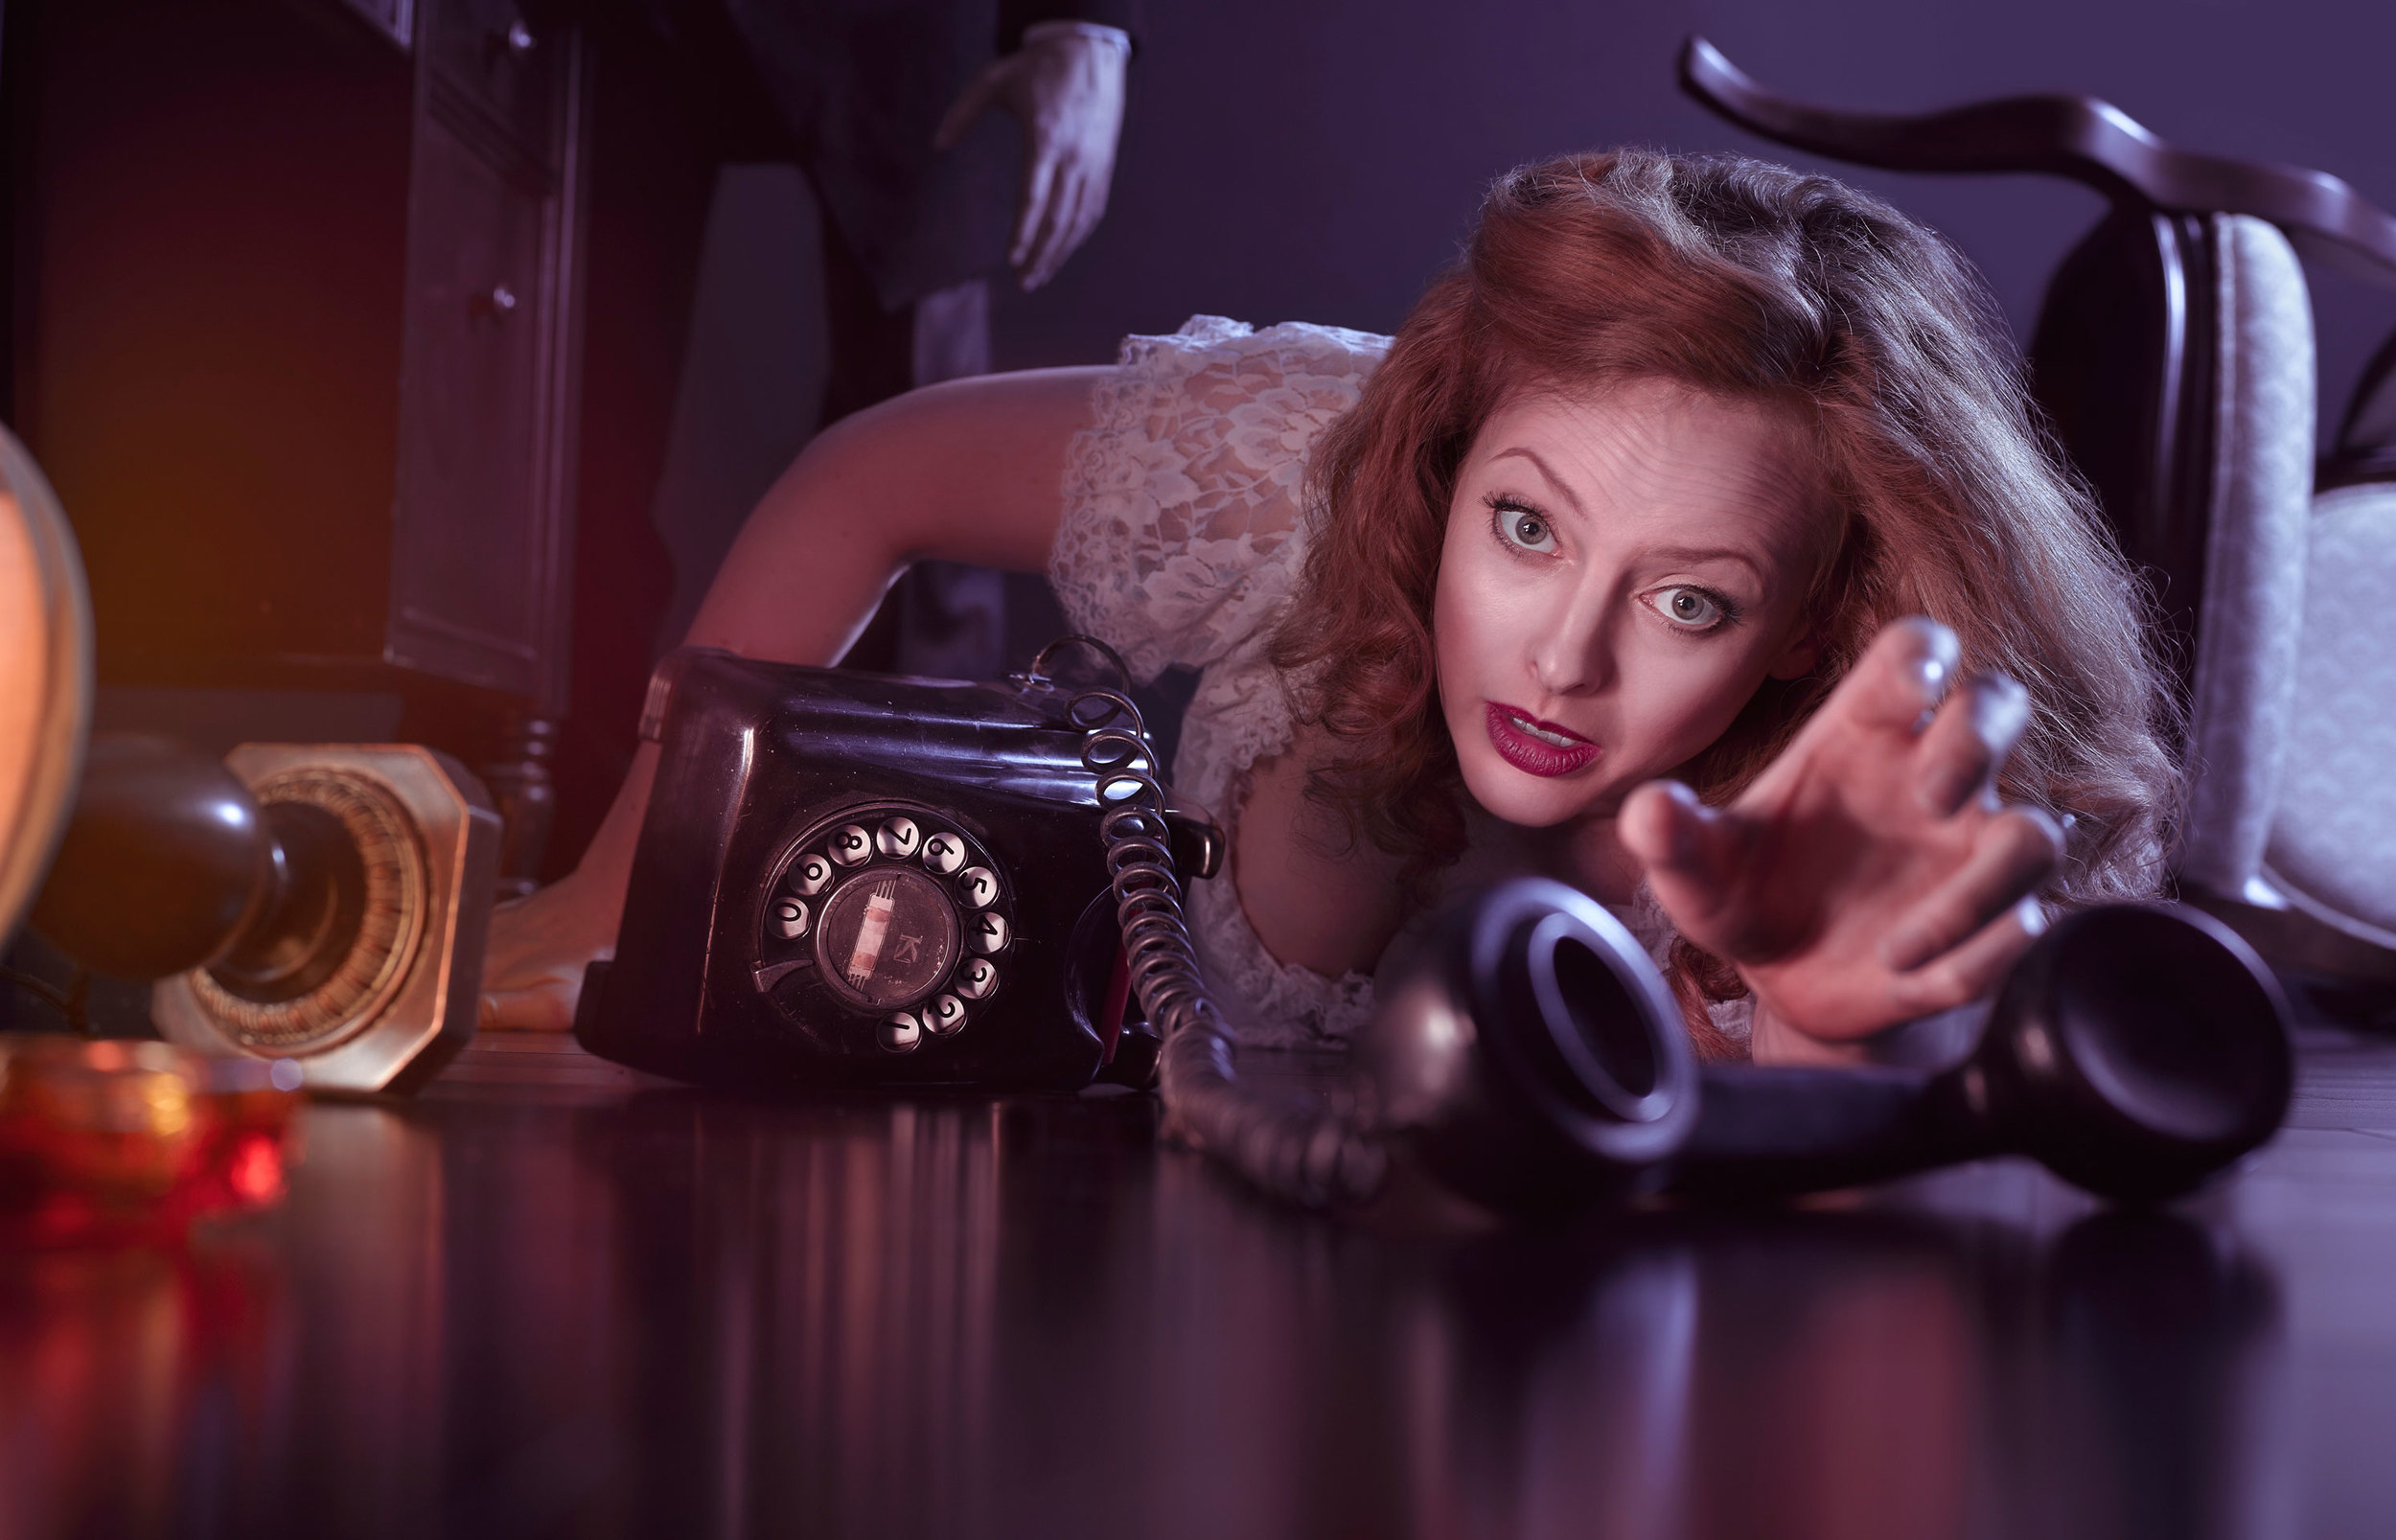 professional photography image of woman on floor reaching for telephone